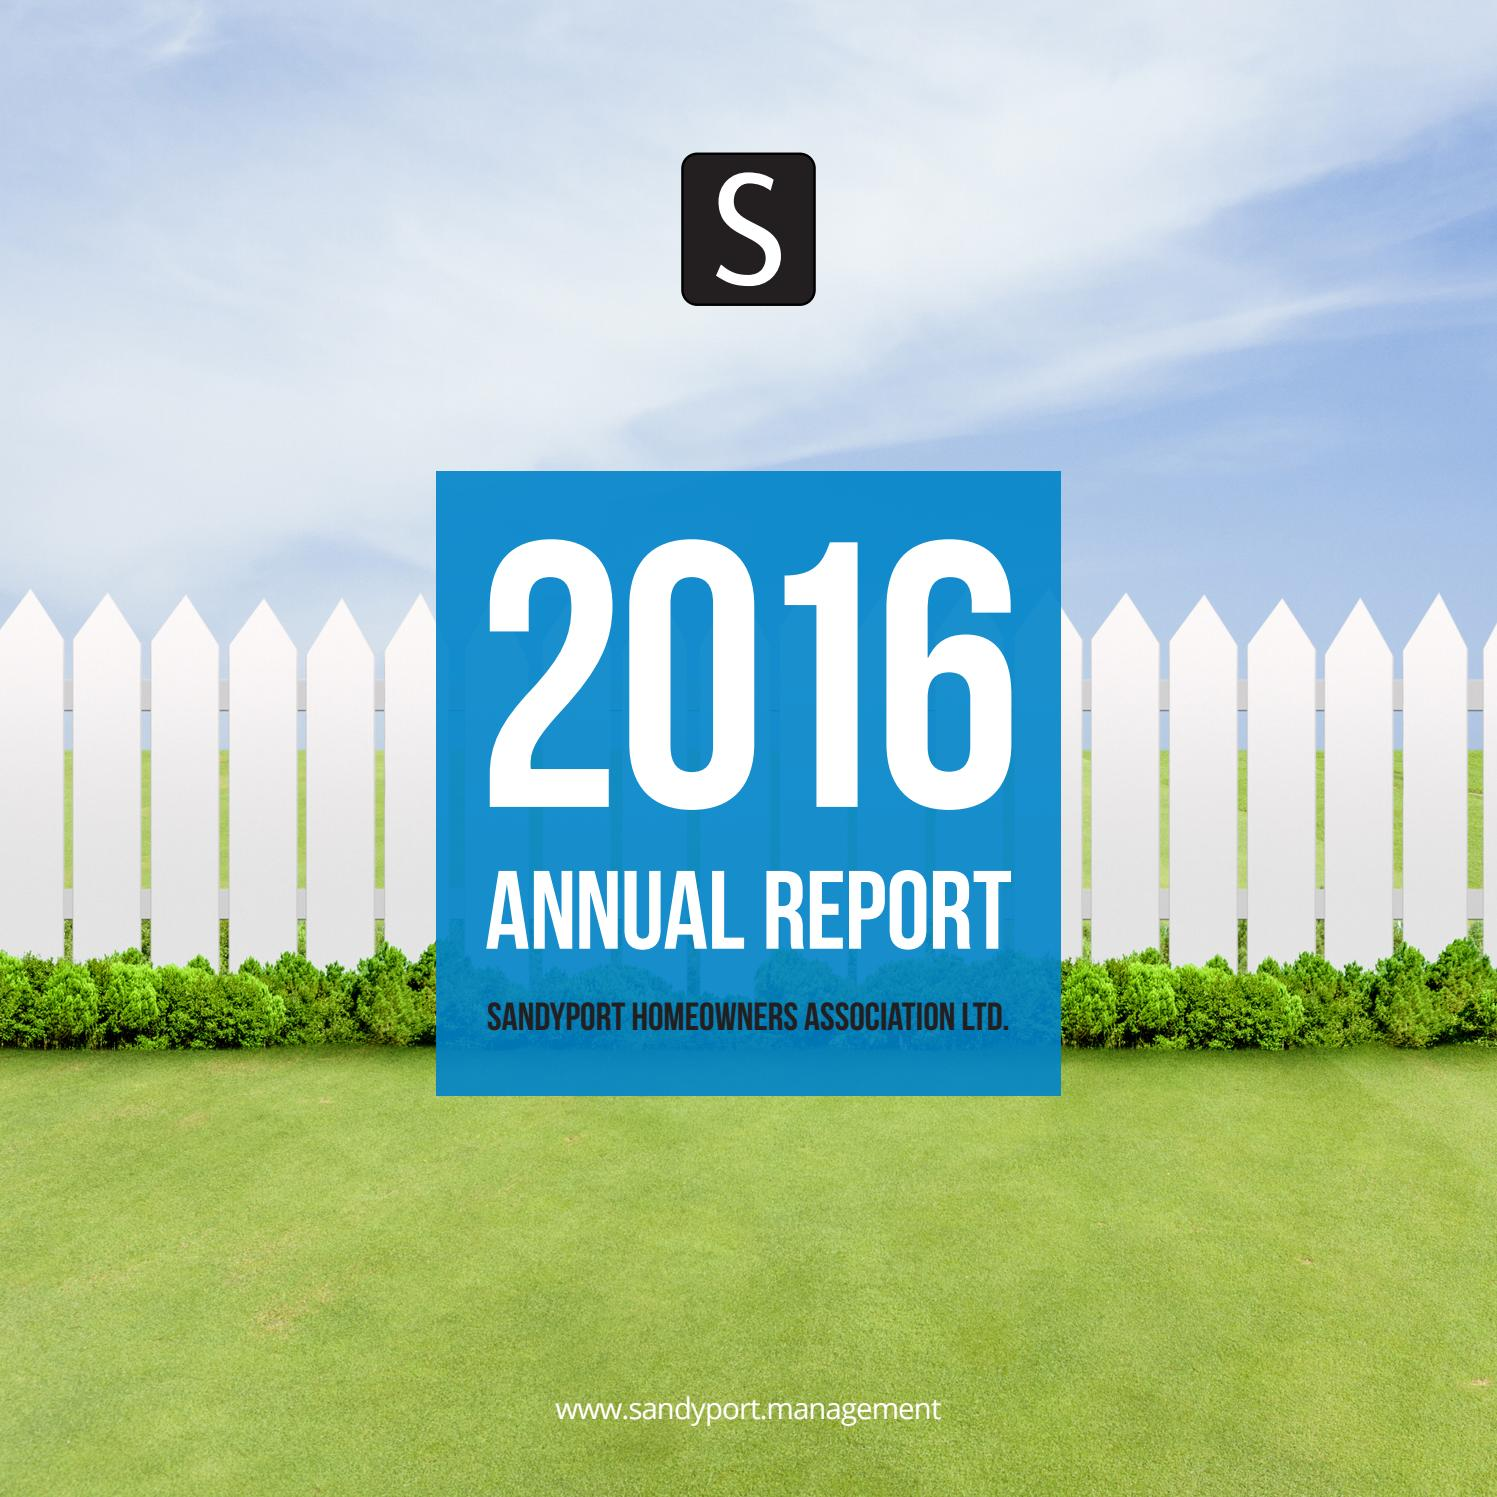 Sandyport 2016 Annual Report by Sandyport Management - issuu